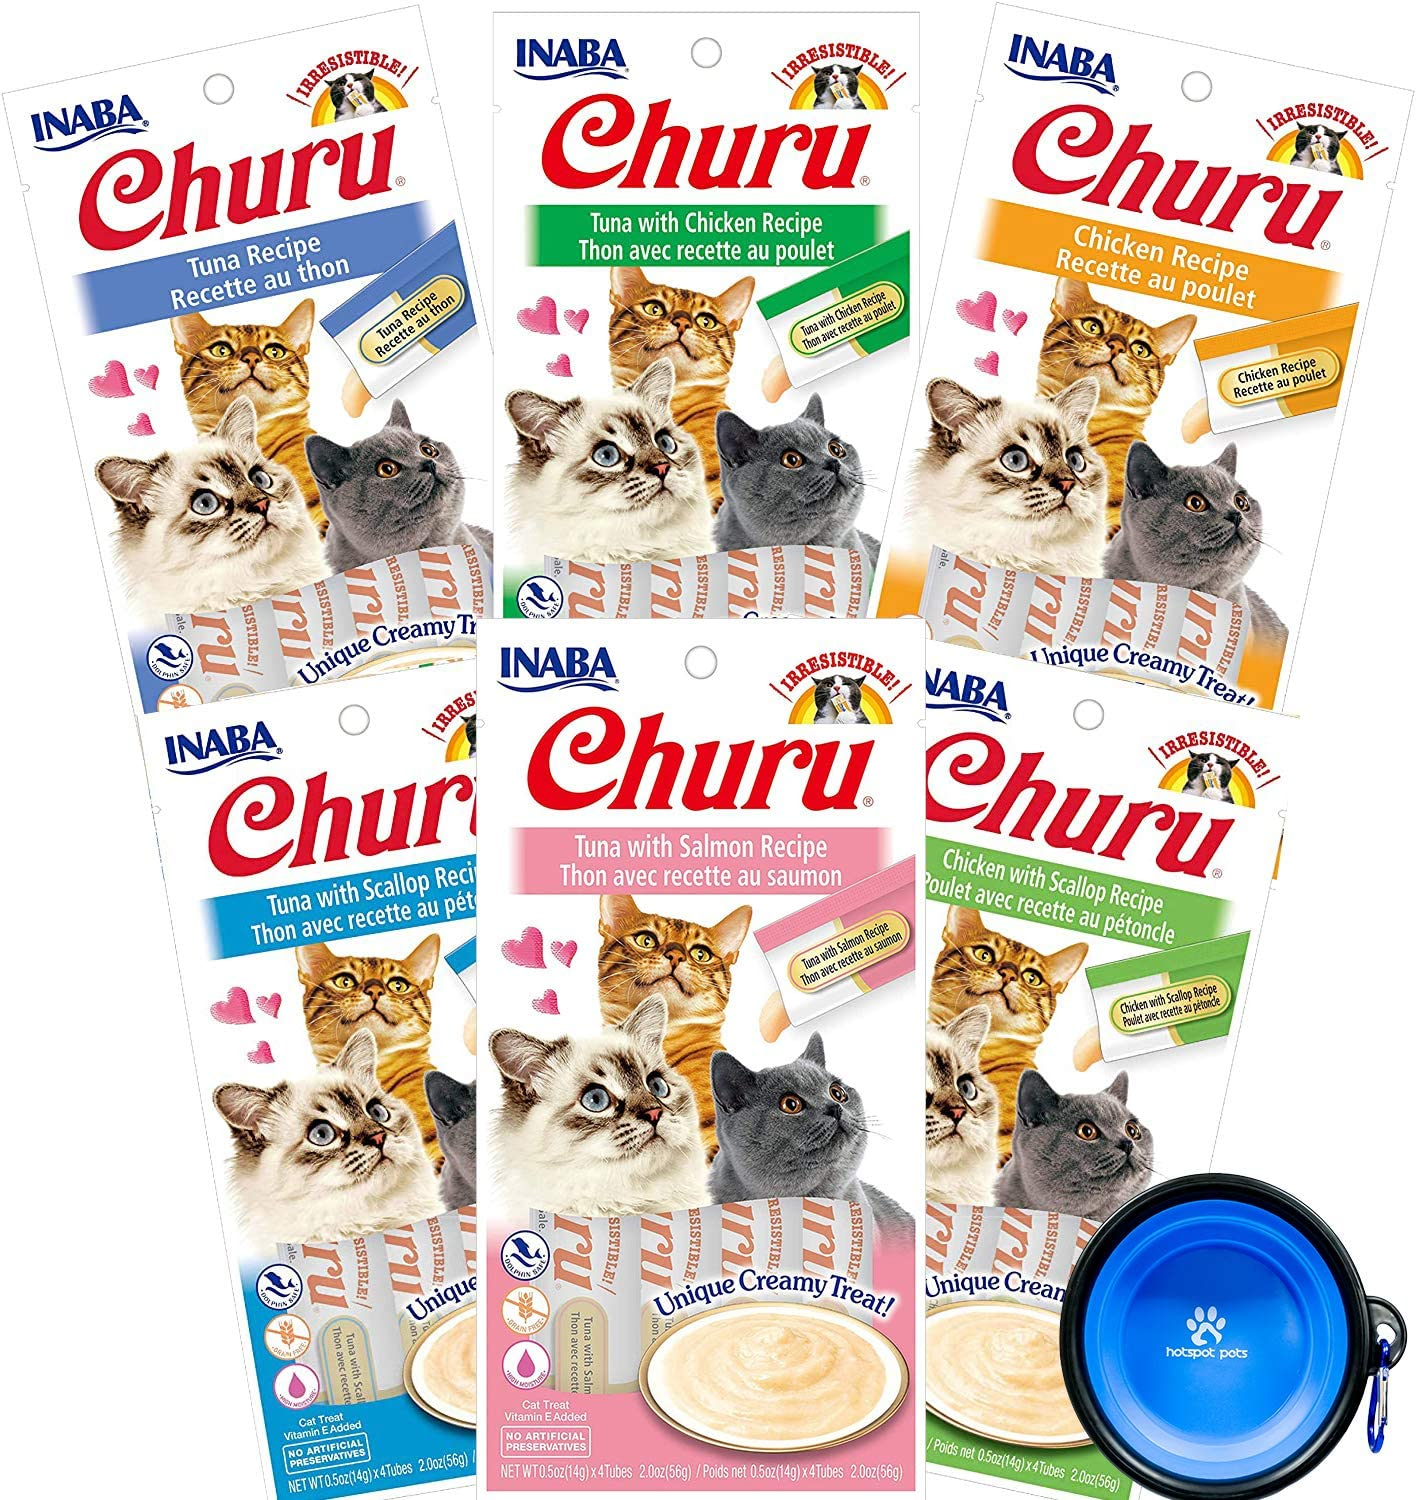 INABA Churu Lickable Purée Wet Treat for Cats - No Grains, No Preservatives, with Added Vitamin E and Green Tea, Bundle with Hotspot Pets Collapsible Bowl - 6 Flavor Pack of 24 Tubes